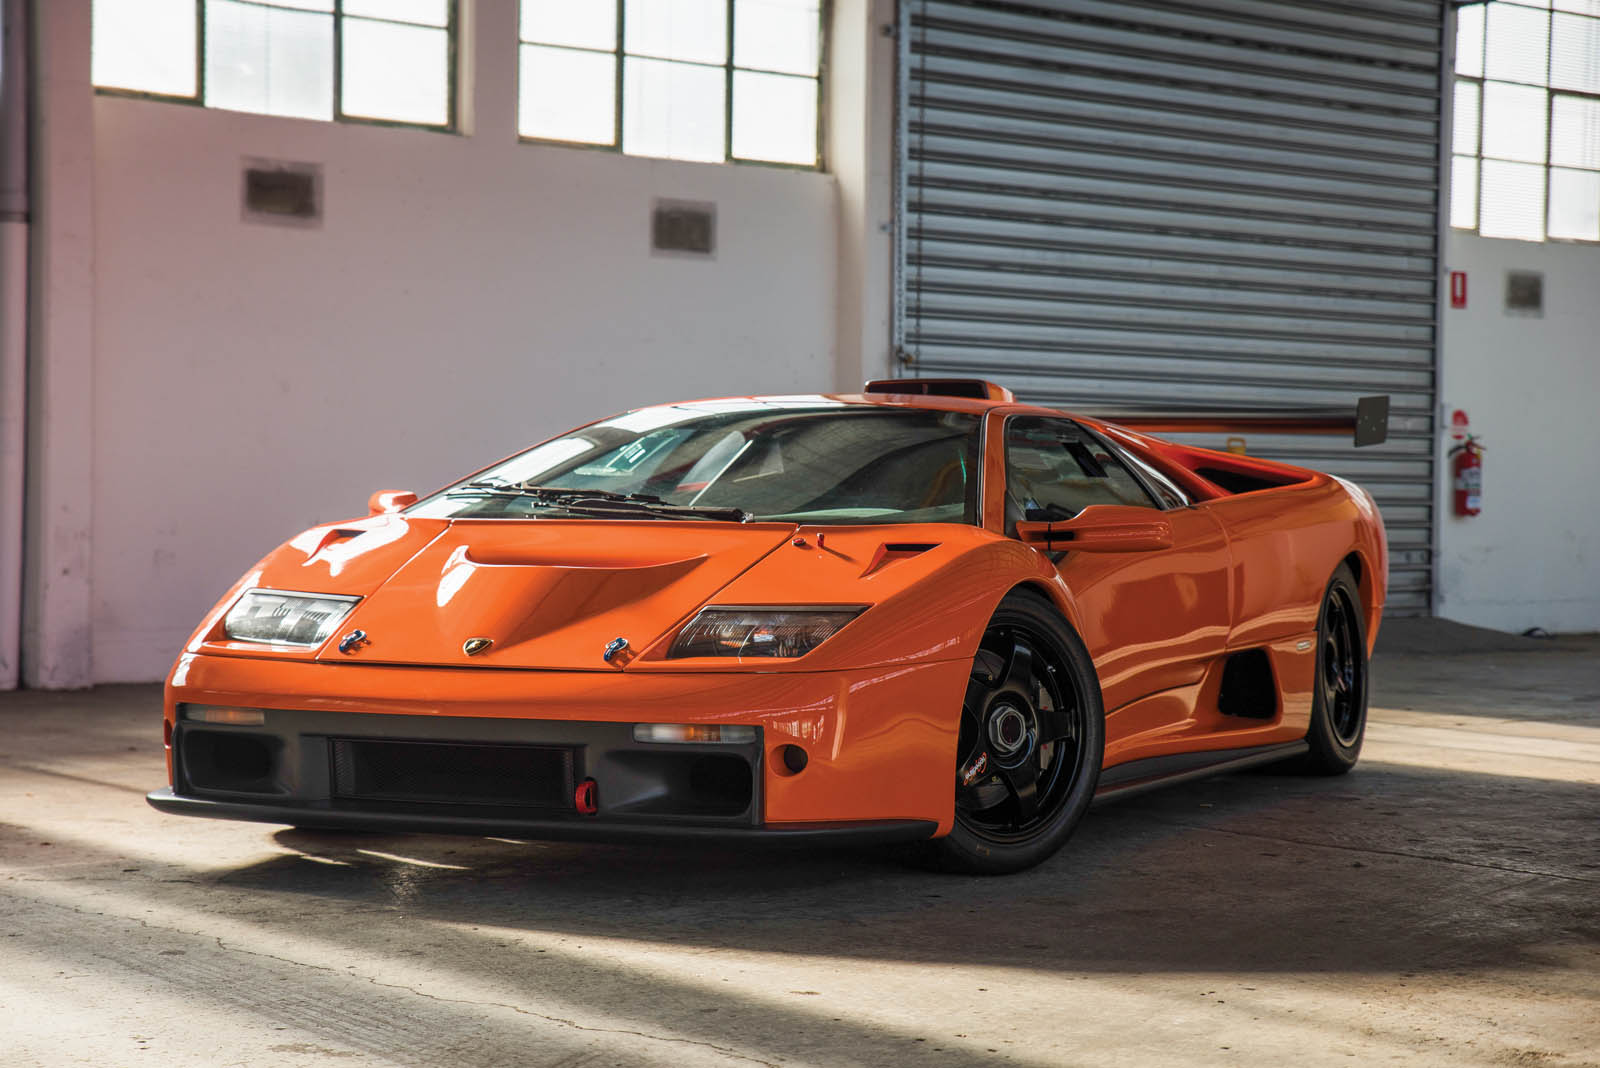 This Lamborghini Diablo Gtr Is Just Begging For A Day At